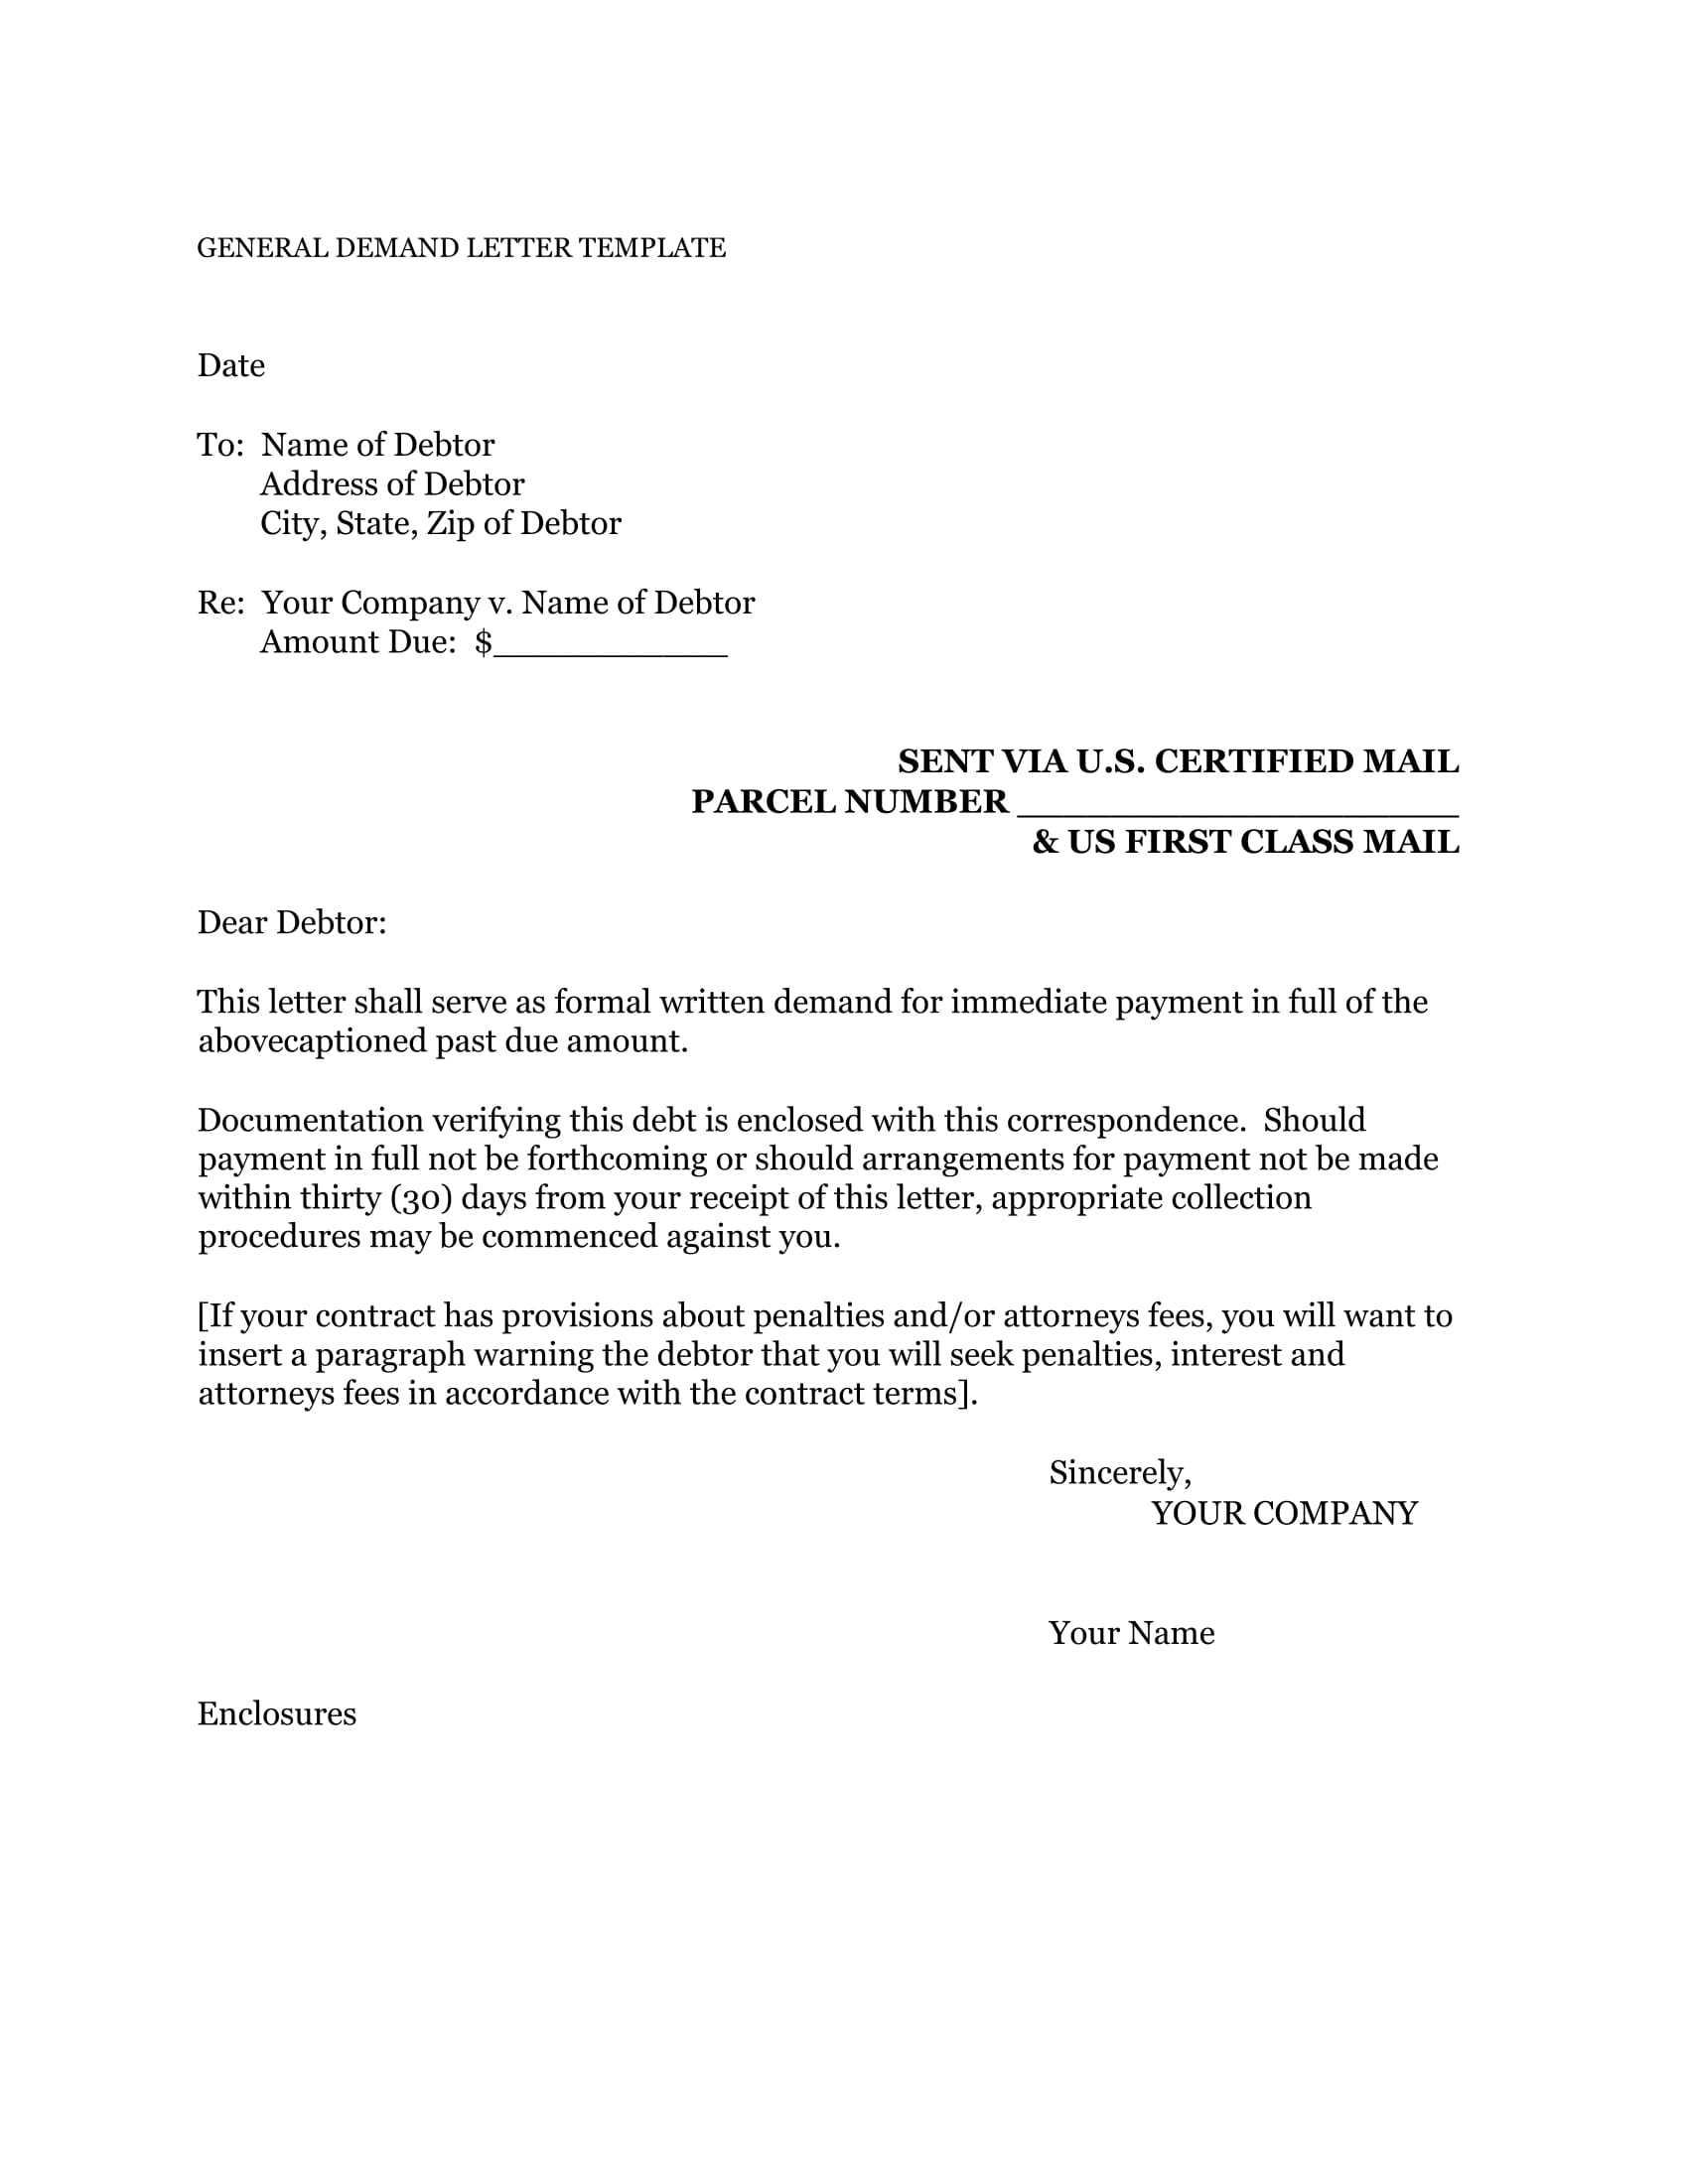 Demand Letter Template For Money Owed